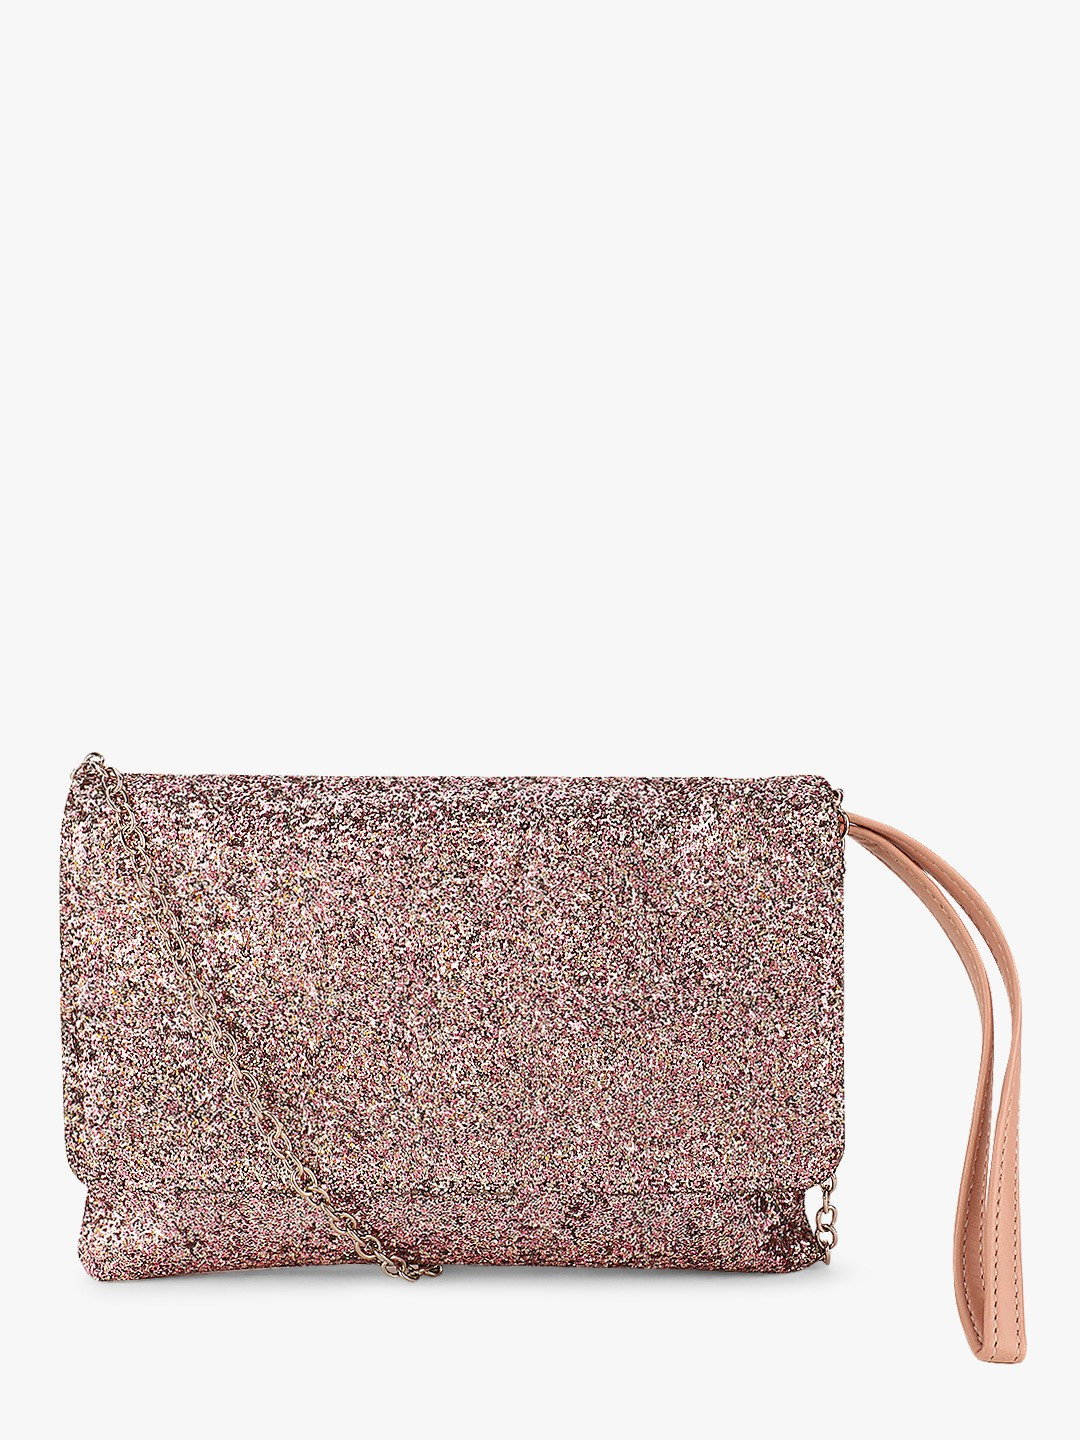 Paris Belle Multi Shimmery Clutch Sling Bag 1